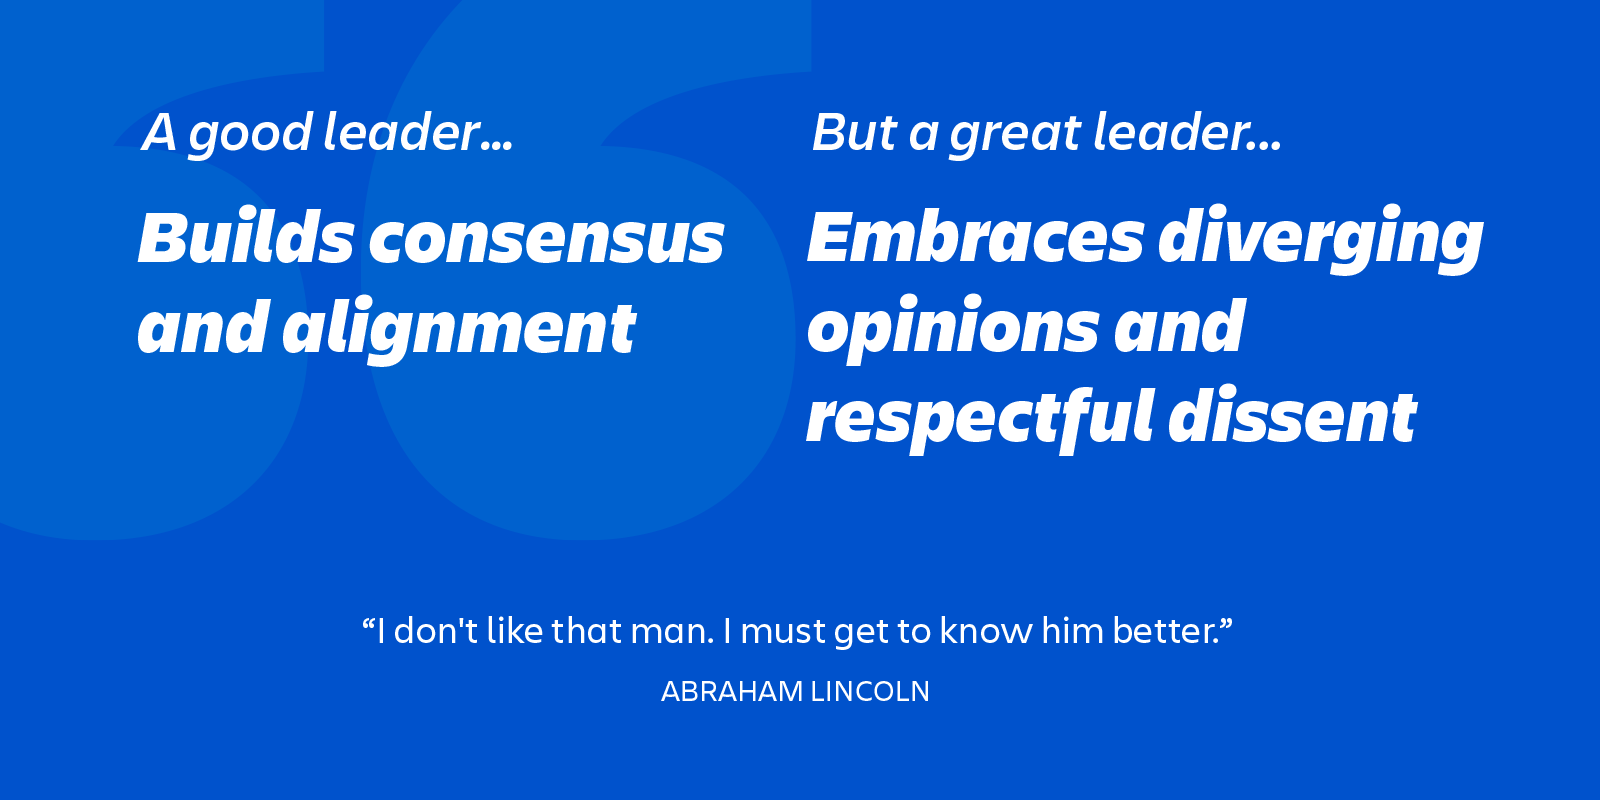 great leaders embrace dissent